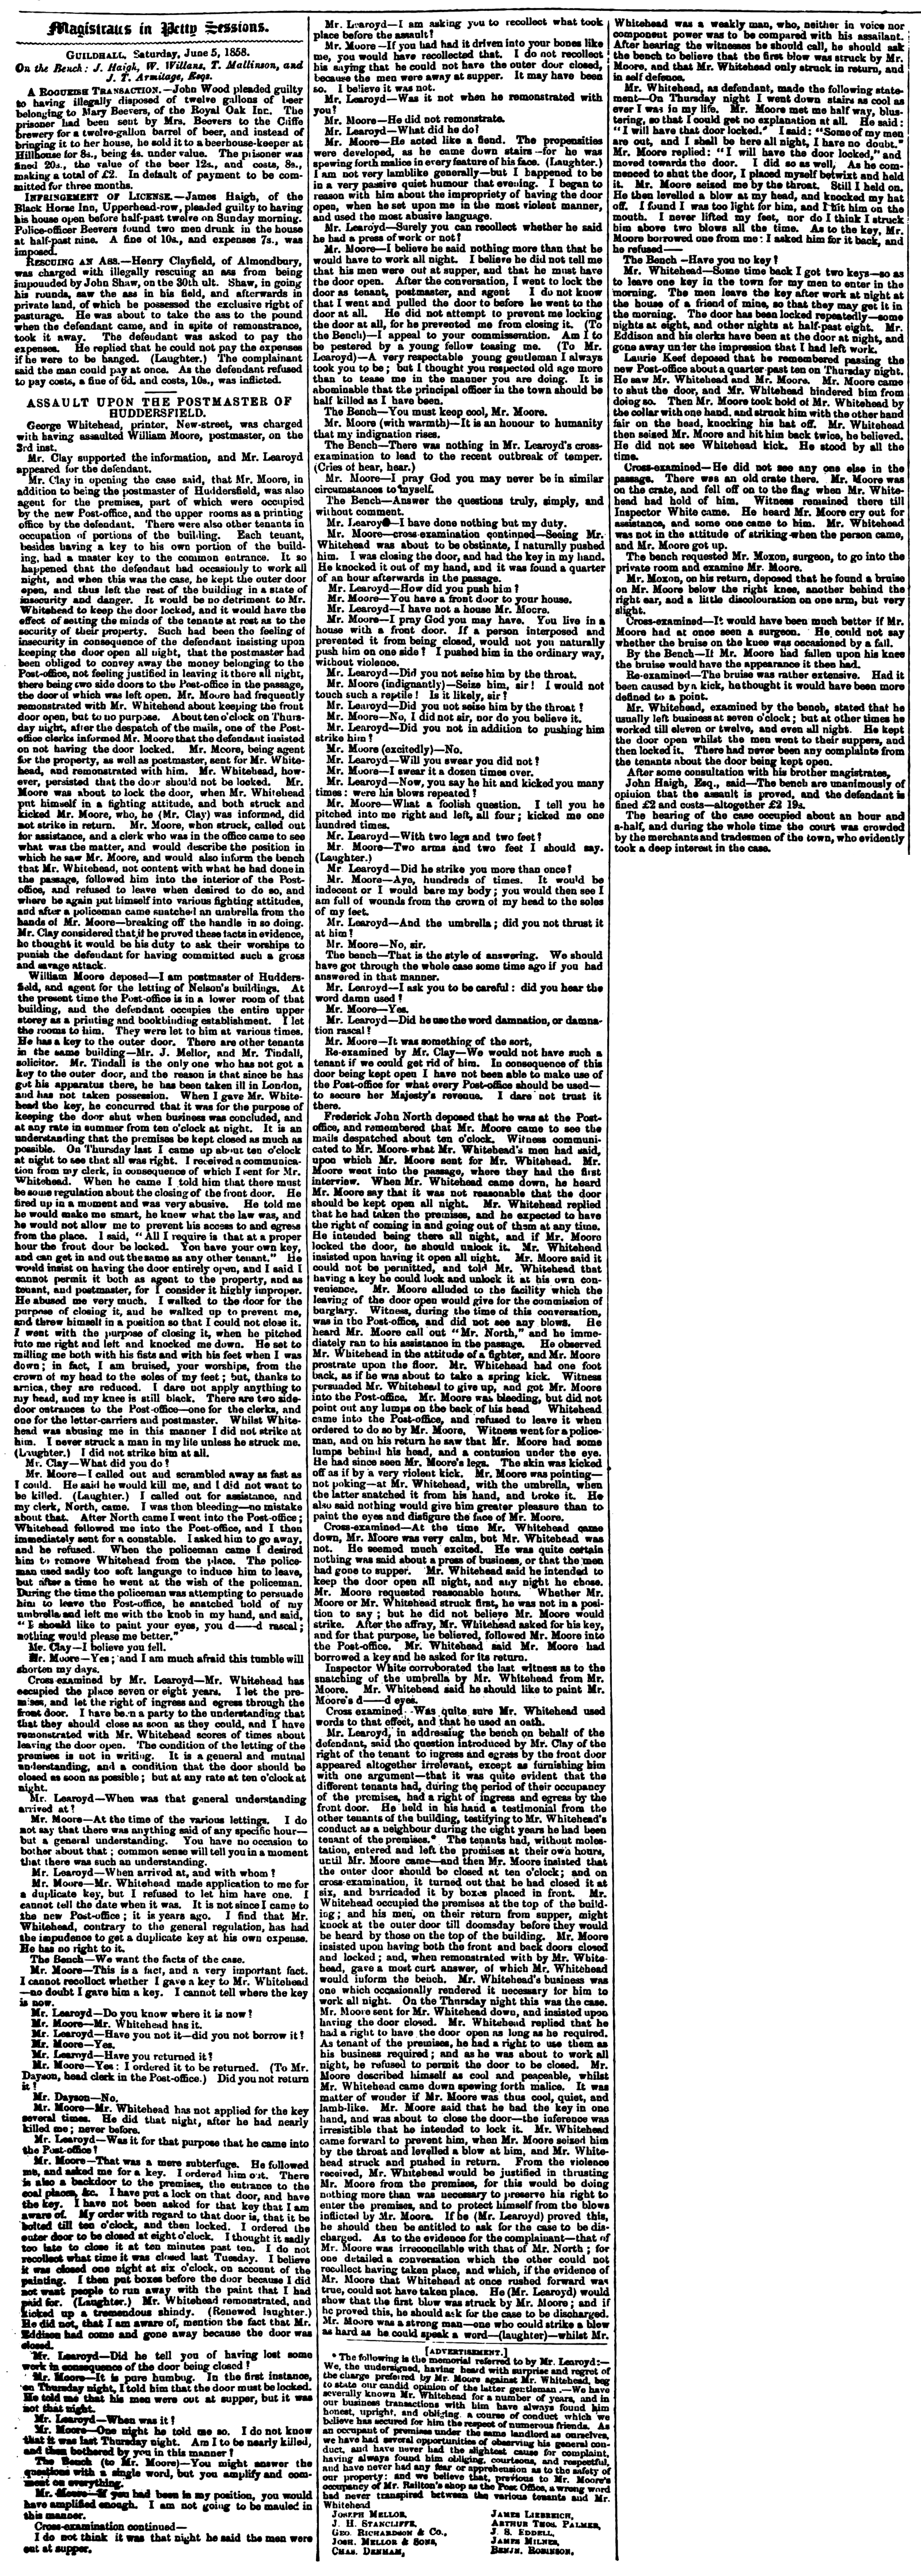 Huddersfield Chronicle 12 June 1858